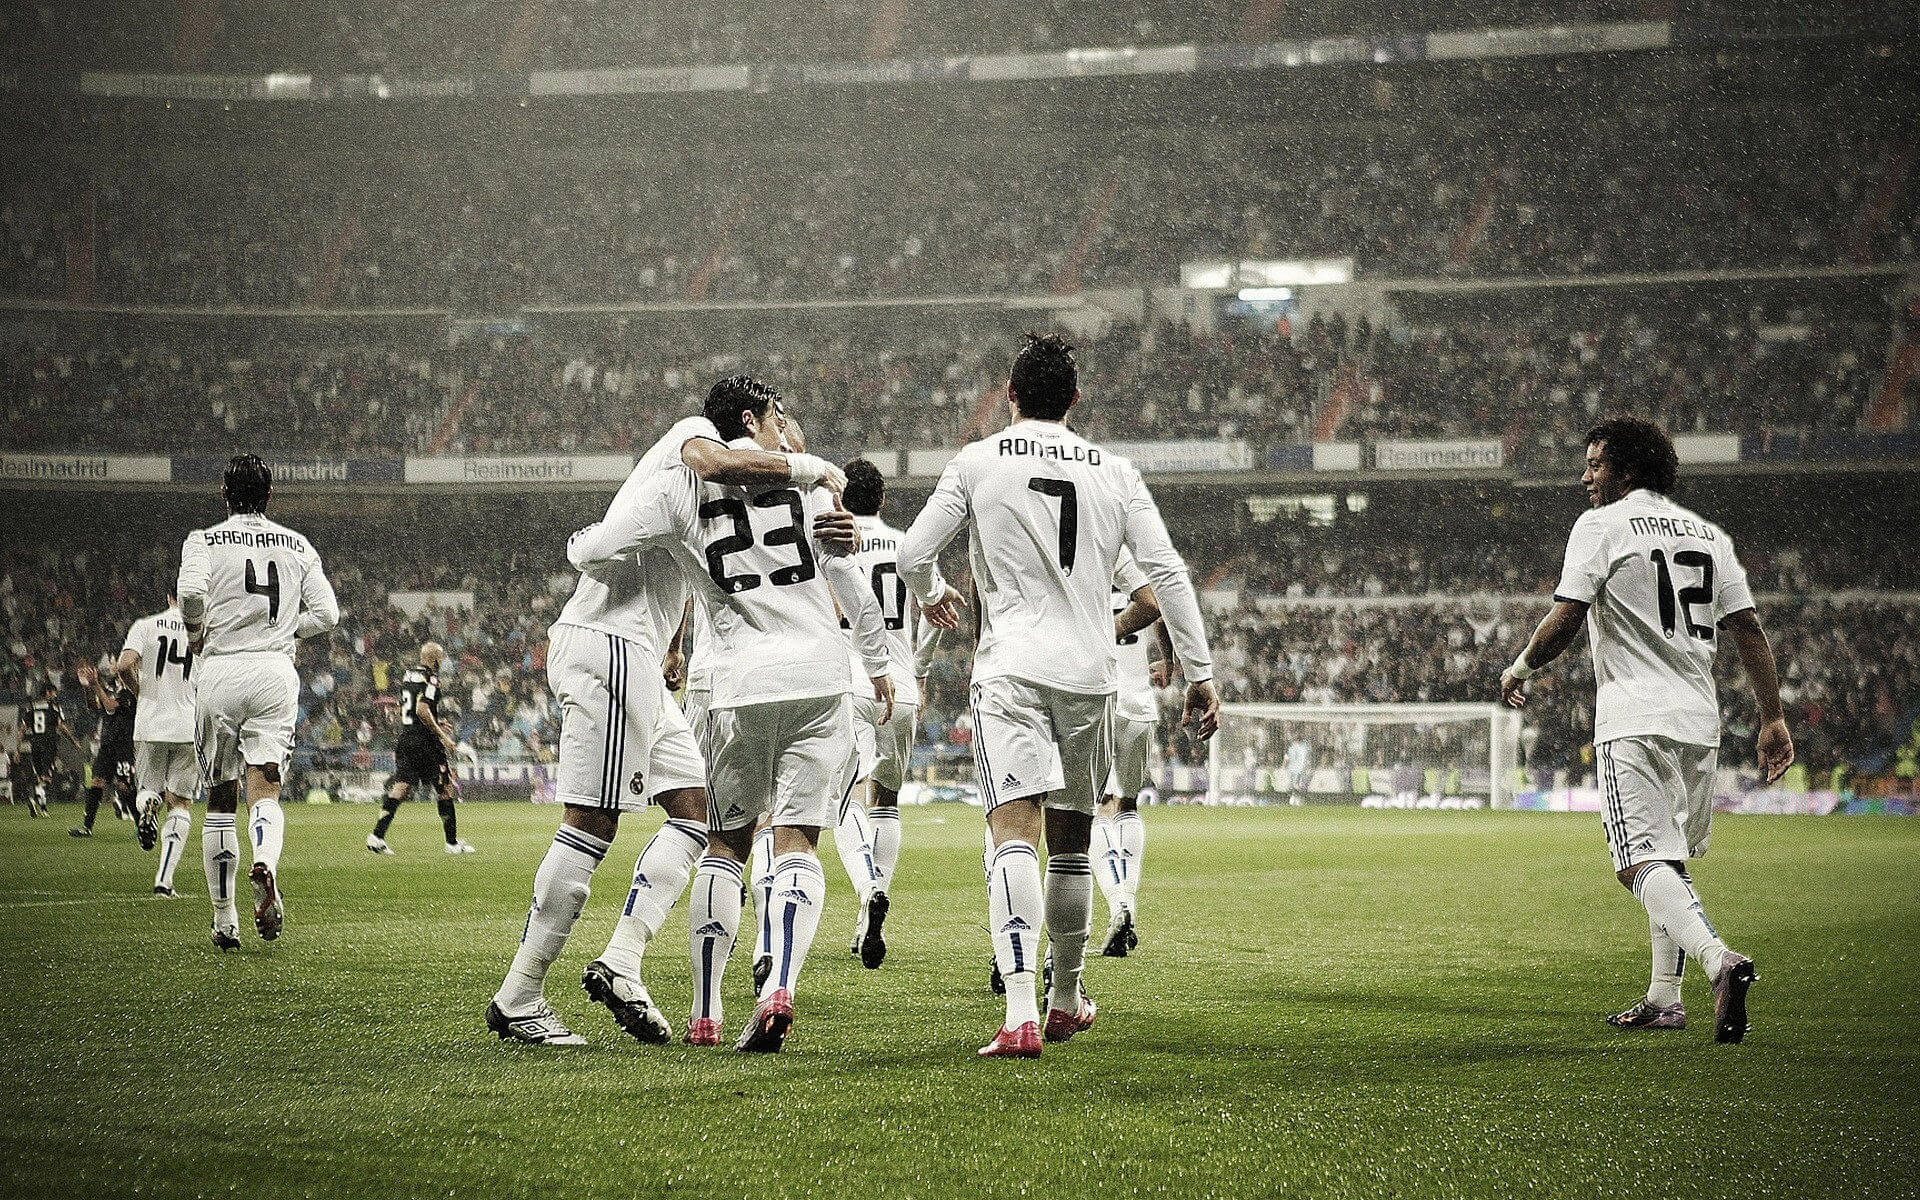 real-madrid-football-new-hd-wallpapers-for-background-in-high-resolution